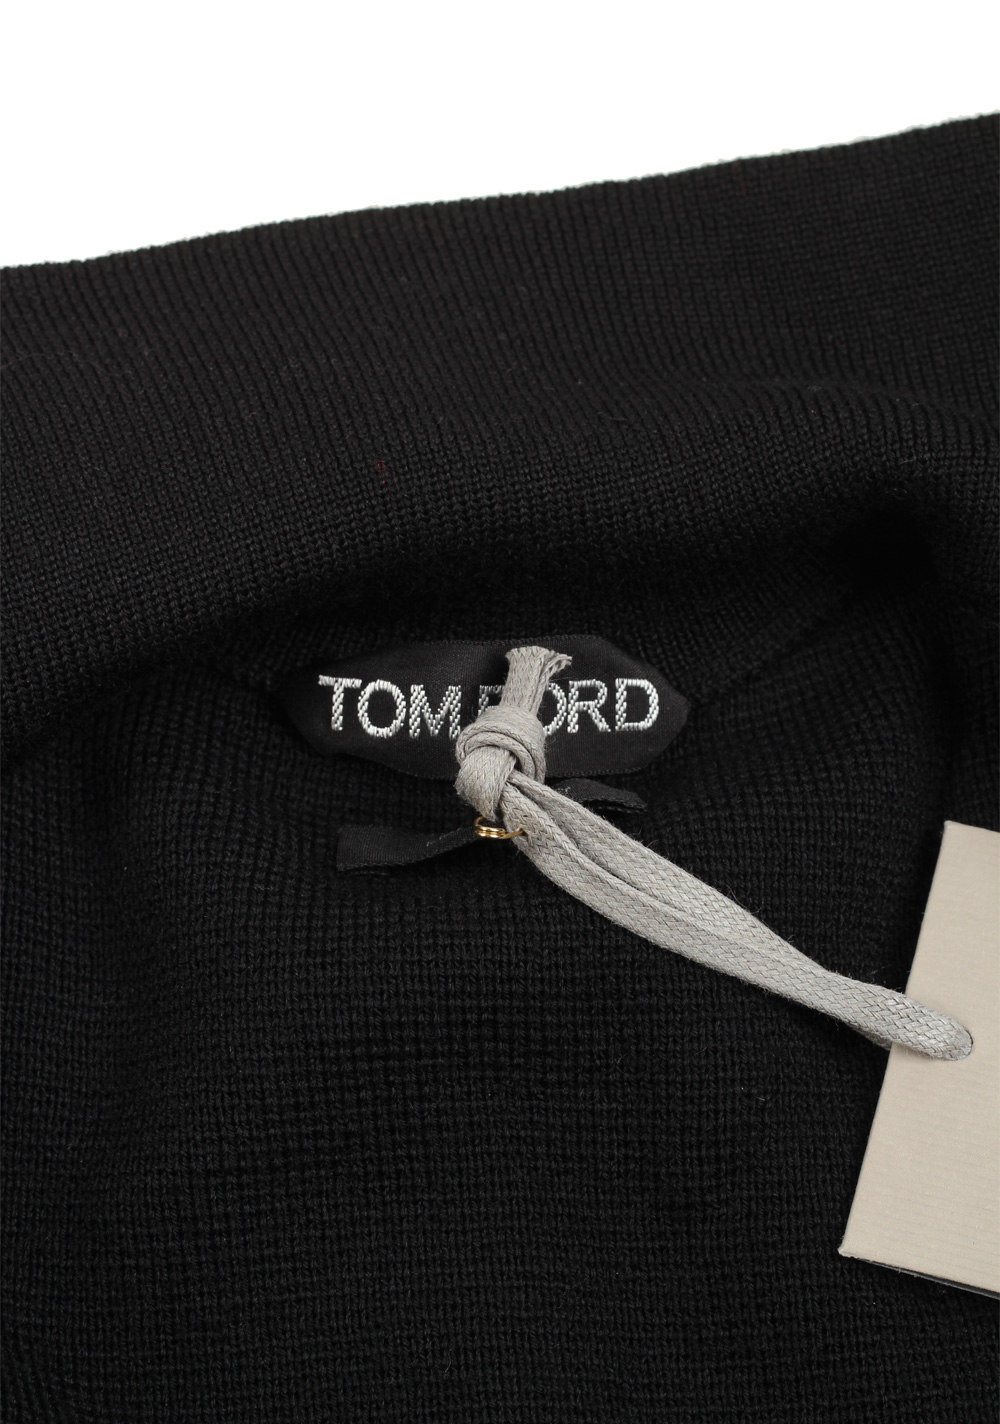 TOM FORD Black Knitted Sleeve Bomber Jacket  Size 50 / 40R U.S.   Costume Limité